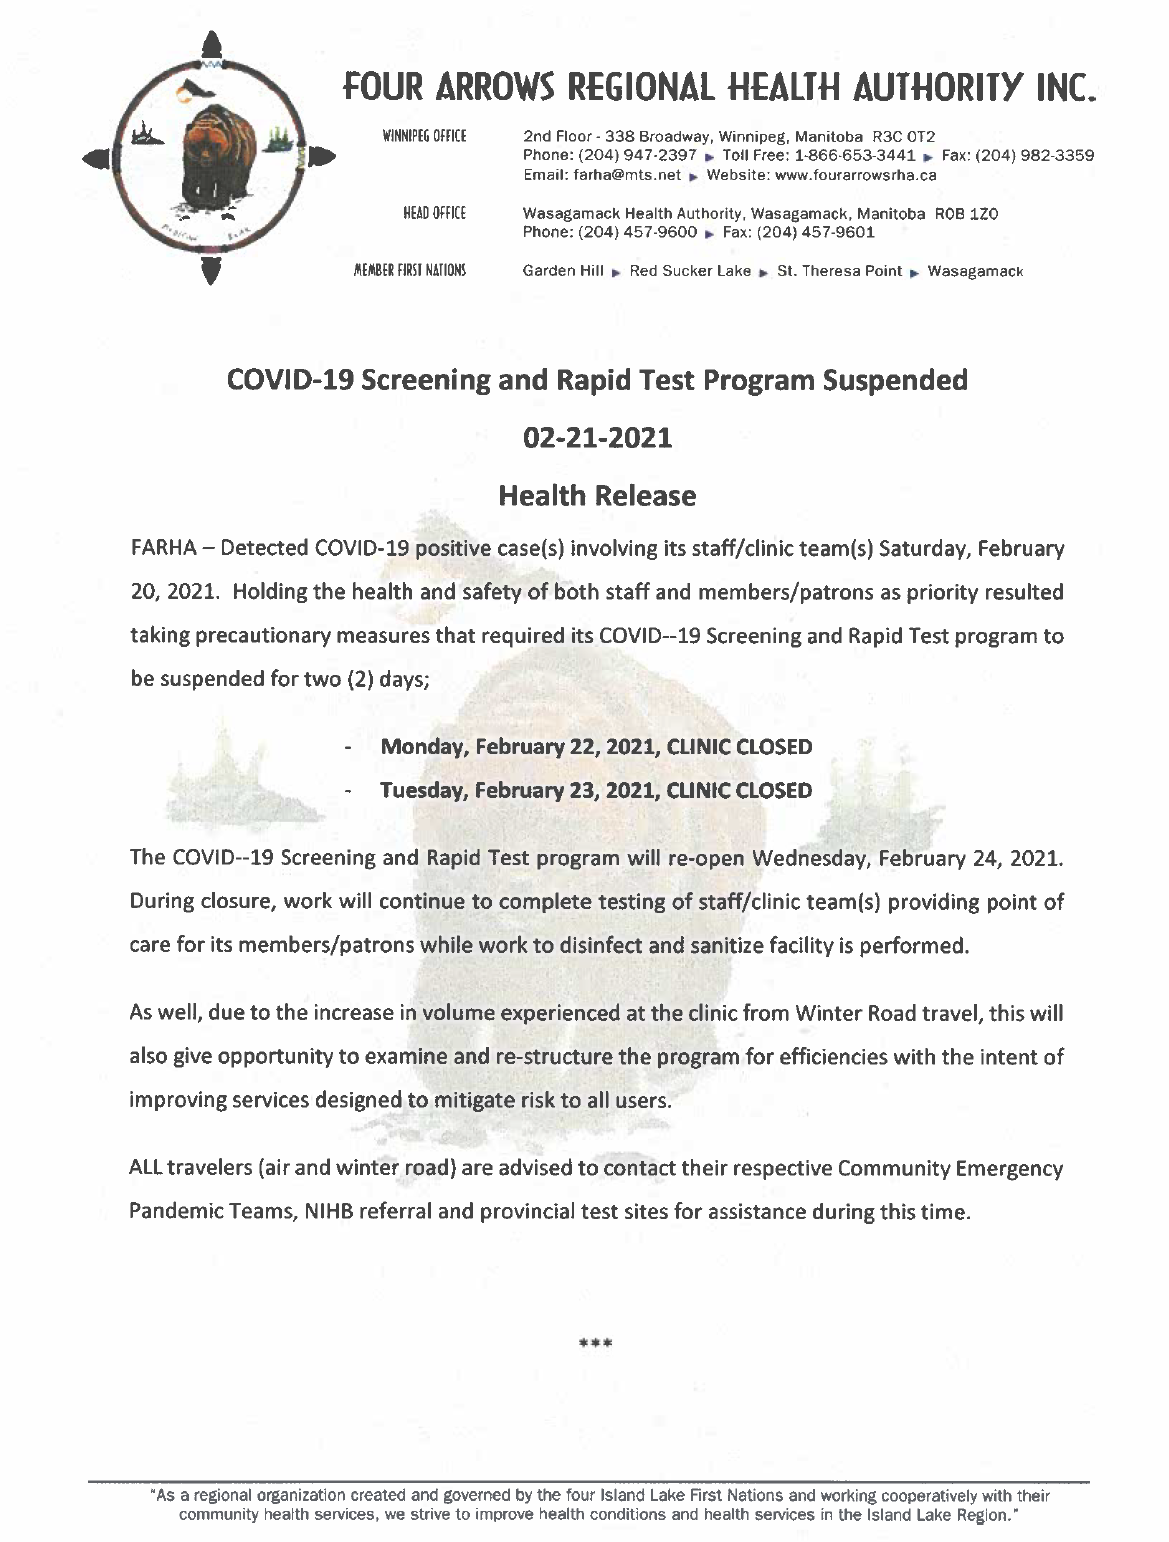 Urgent: COVID-19 Screening and Rapid Test Program Suspended